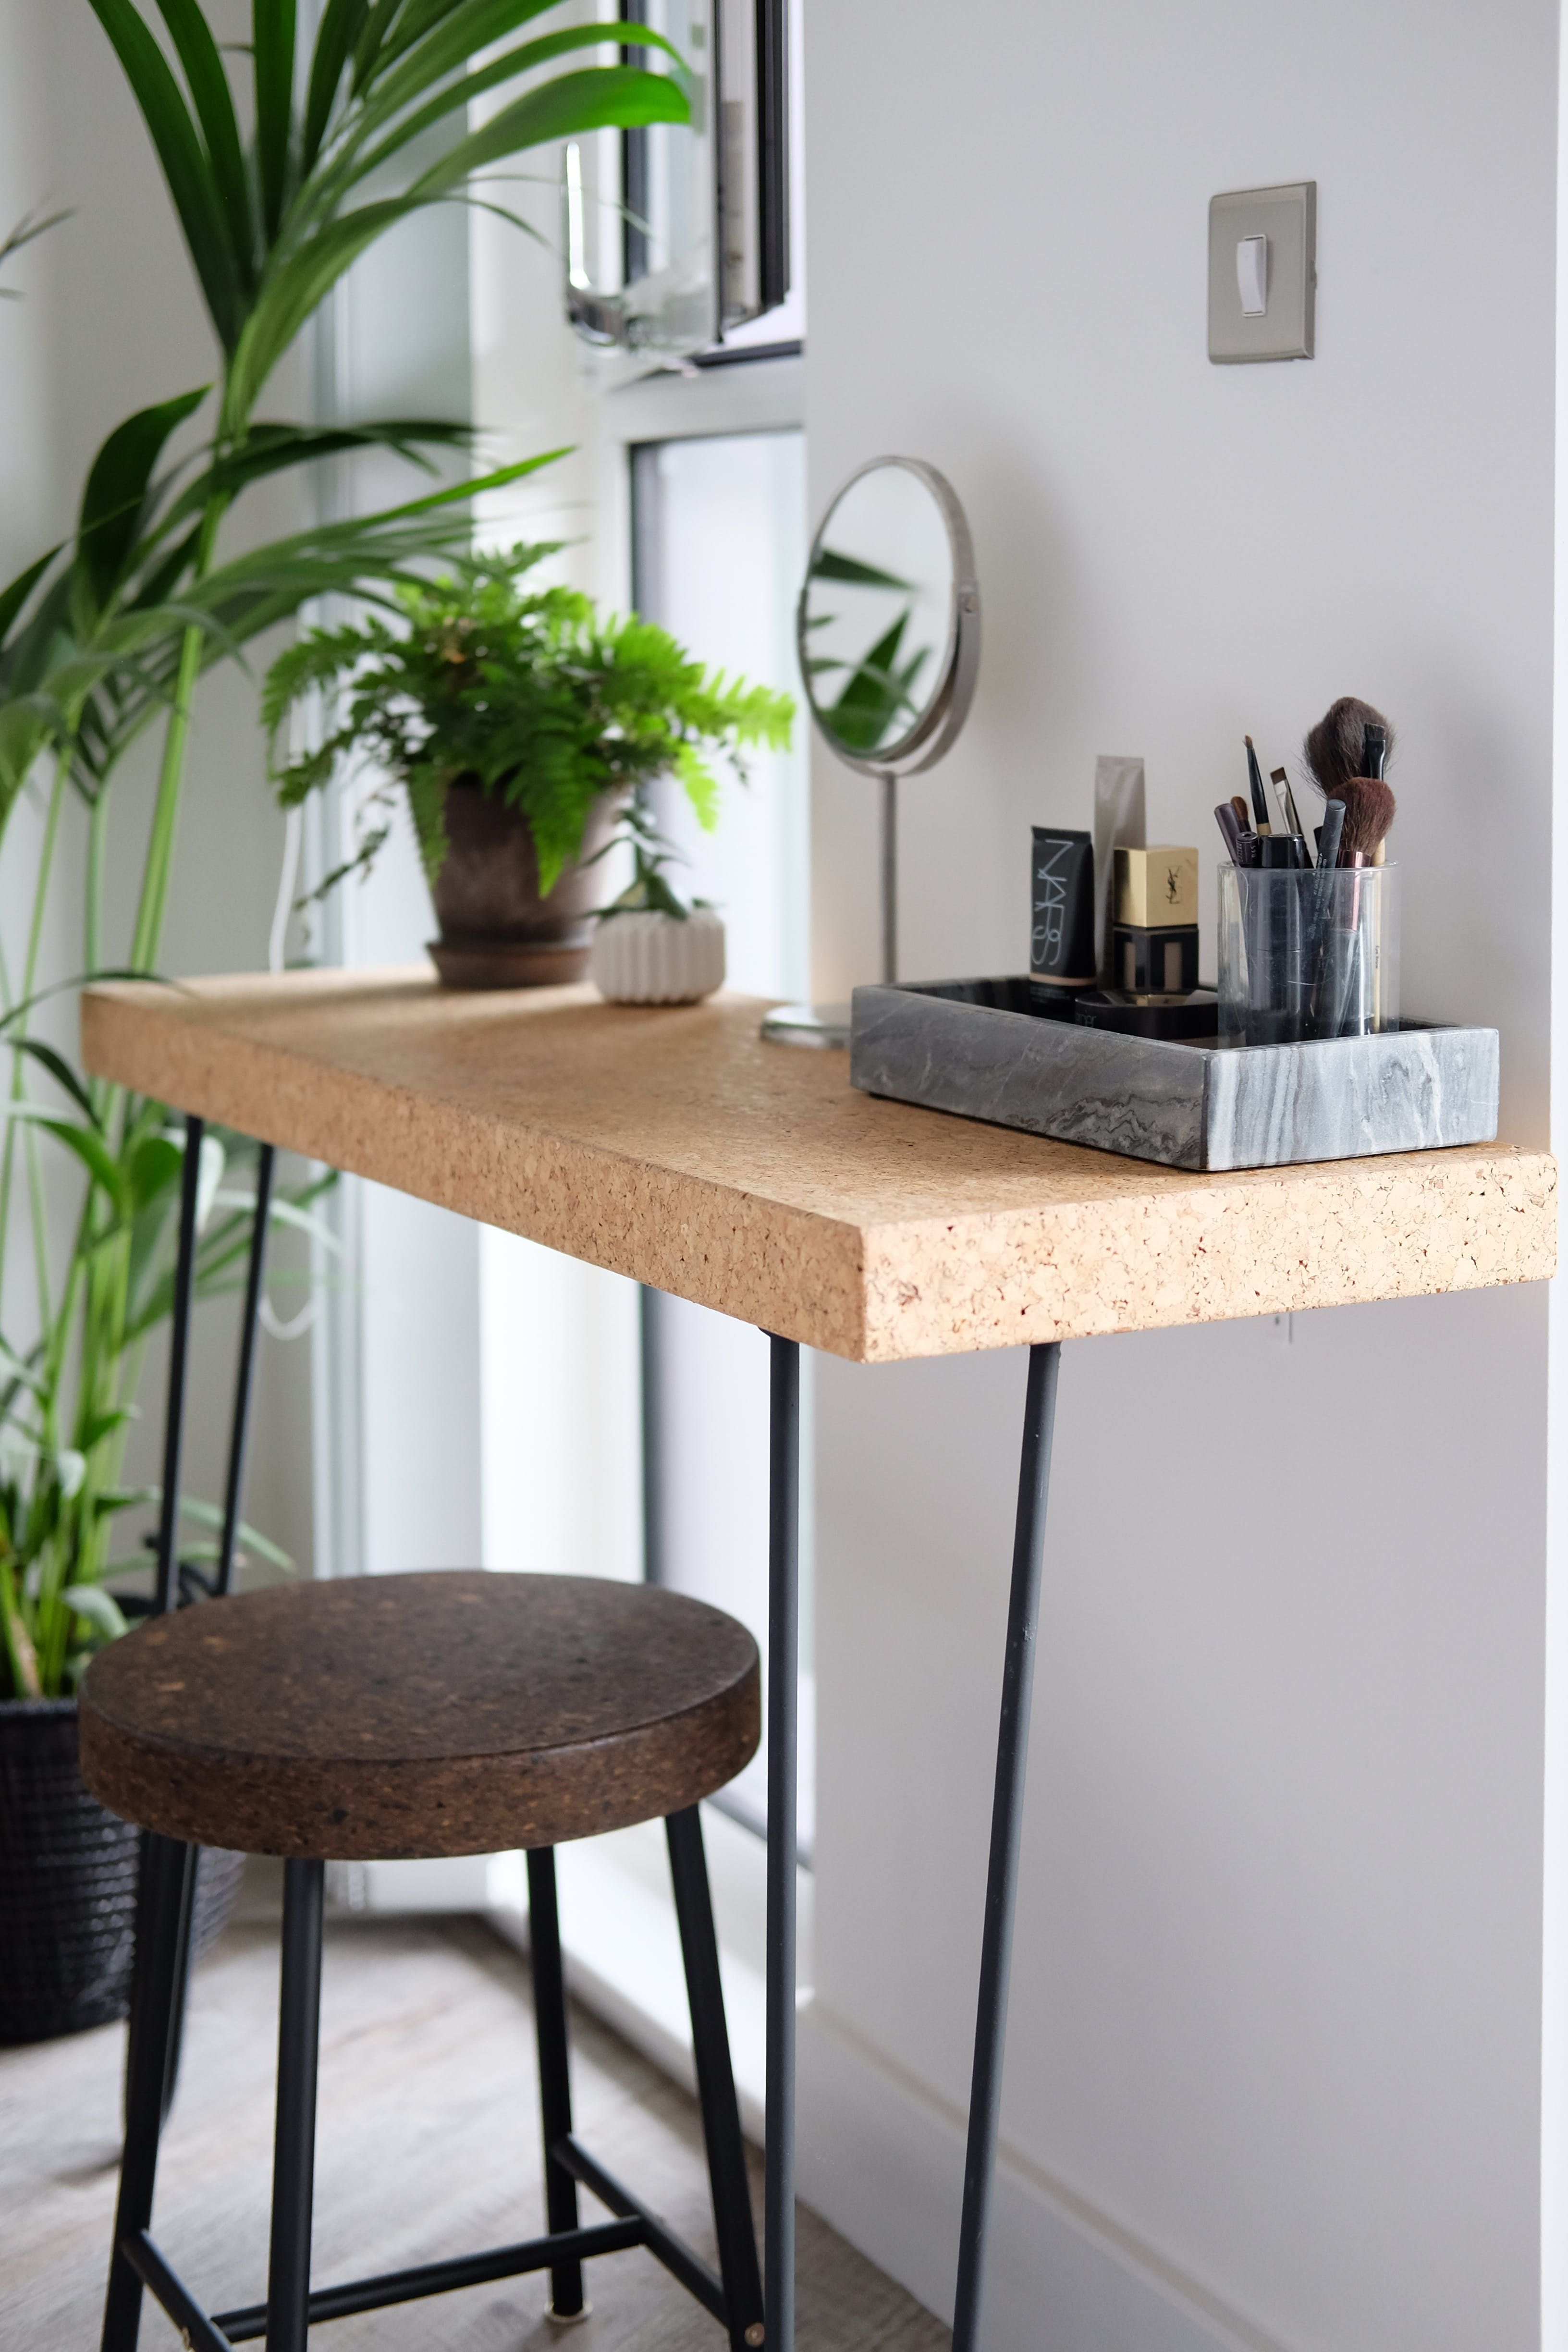 Tour A Nordic Style London Flat Dressing Table Cork And Bench